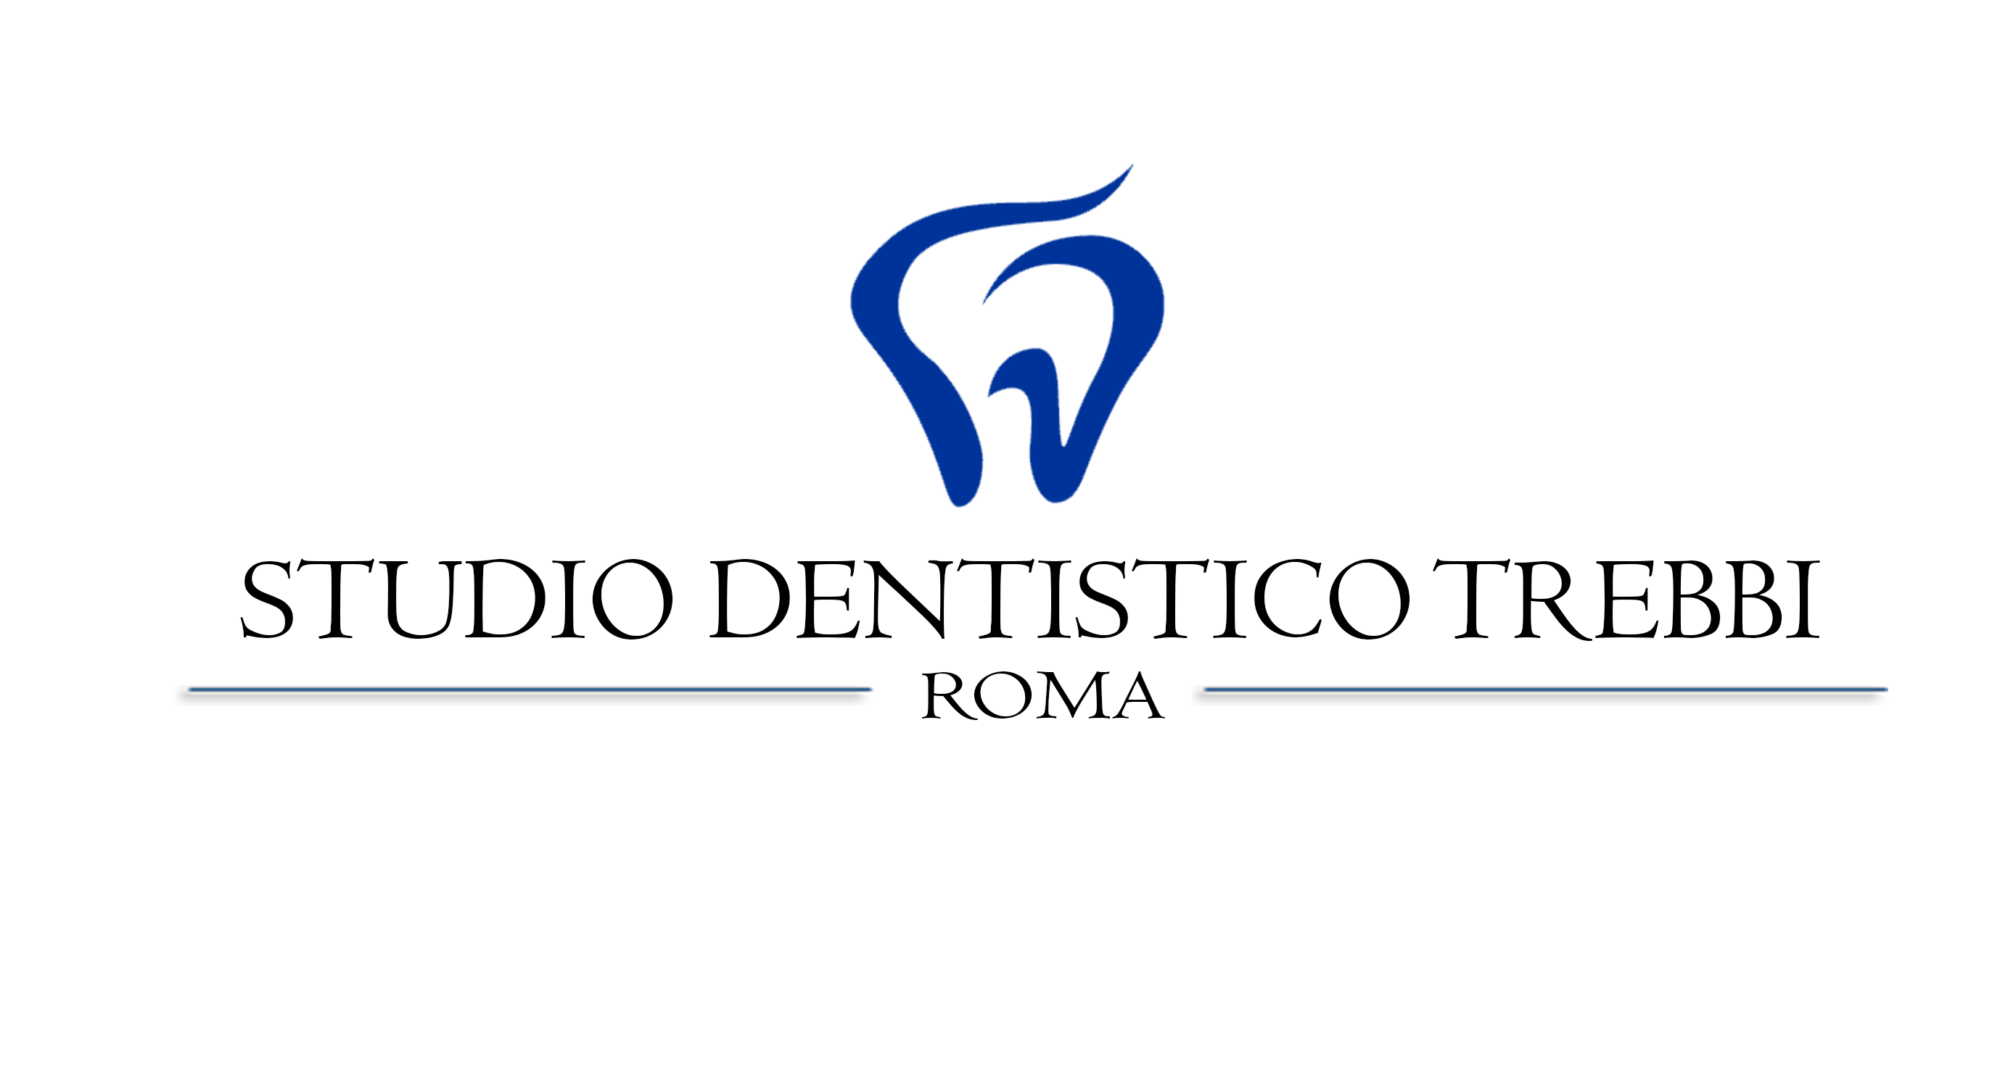 Studio Dentistico Trebbi